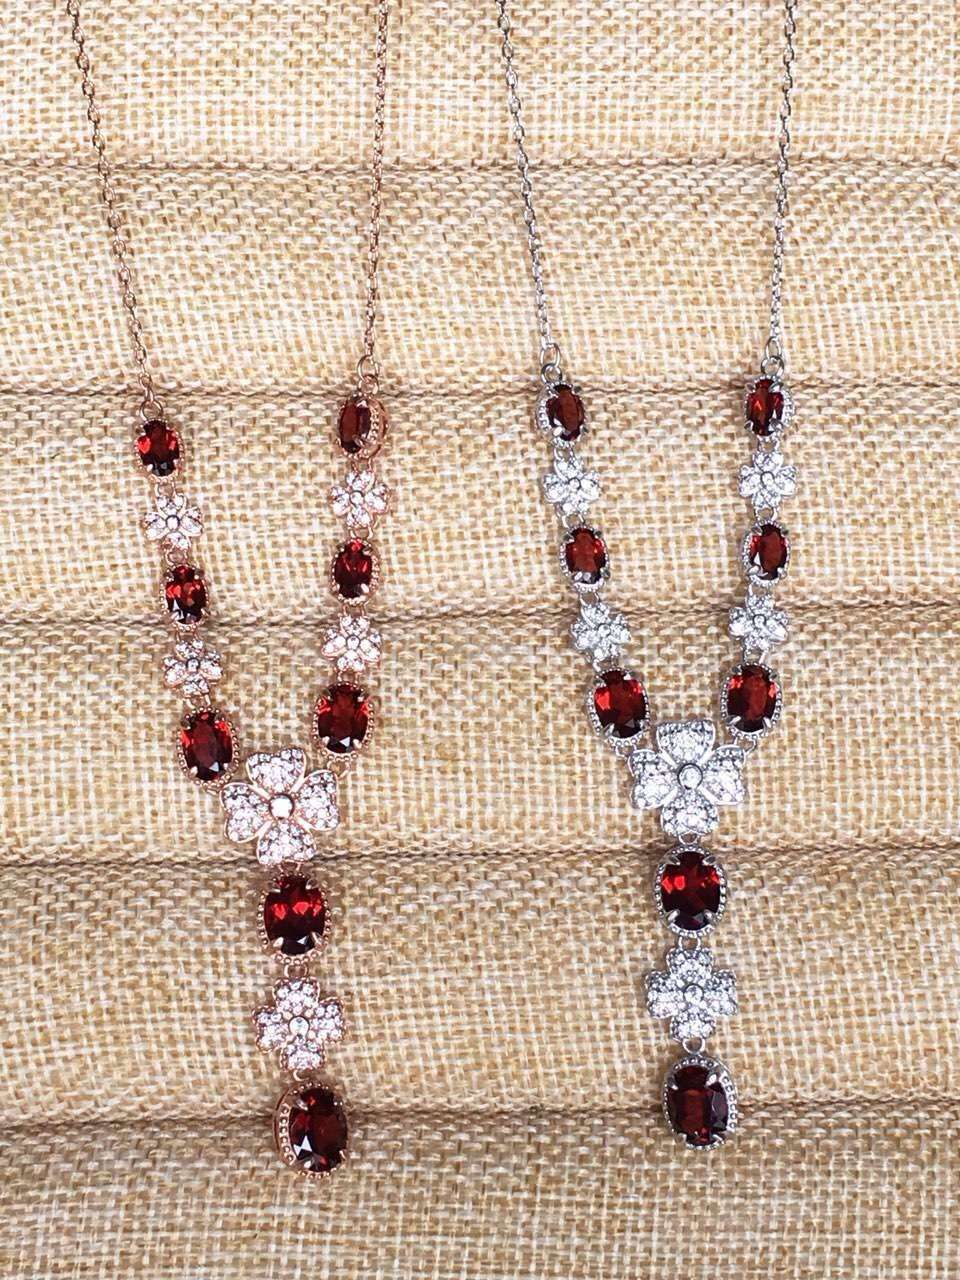 Natural red garnet stone Necklace natural olivine Pendant Necklace S925 silver trendy Luxury Snowflakes star women party JewelryNatural red garnet stone Necklace natural olivine Pendant Necklace S925 silver trendy Luxury Snowflakes star women party Jewelry